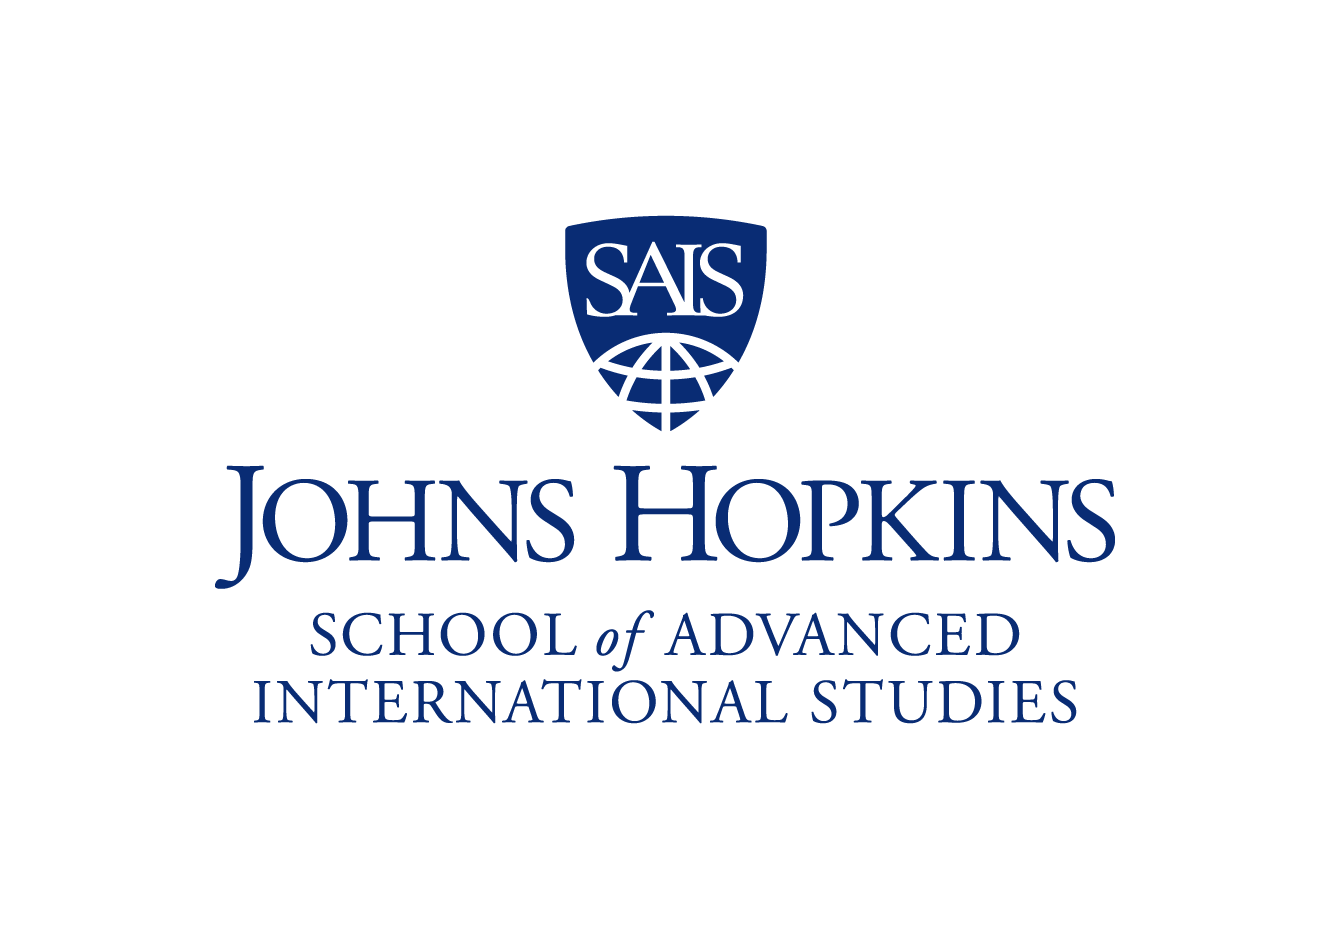 School of Advanced International Studies